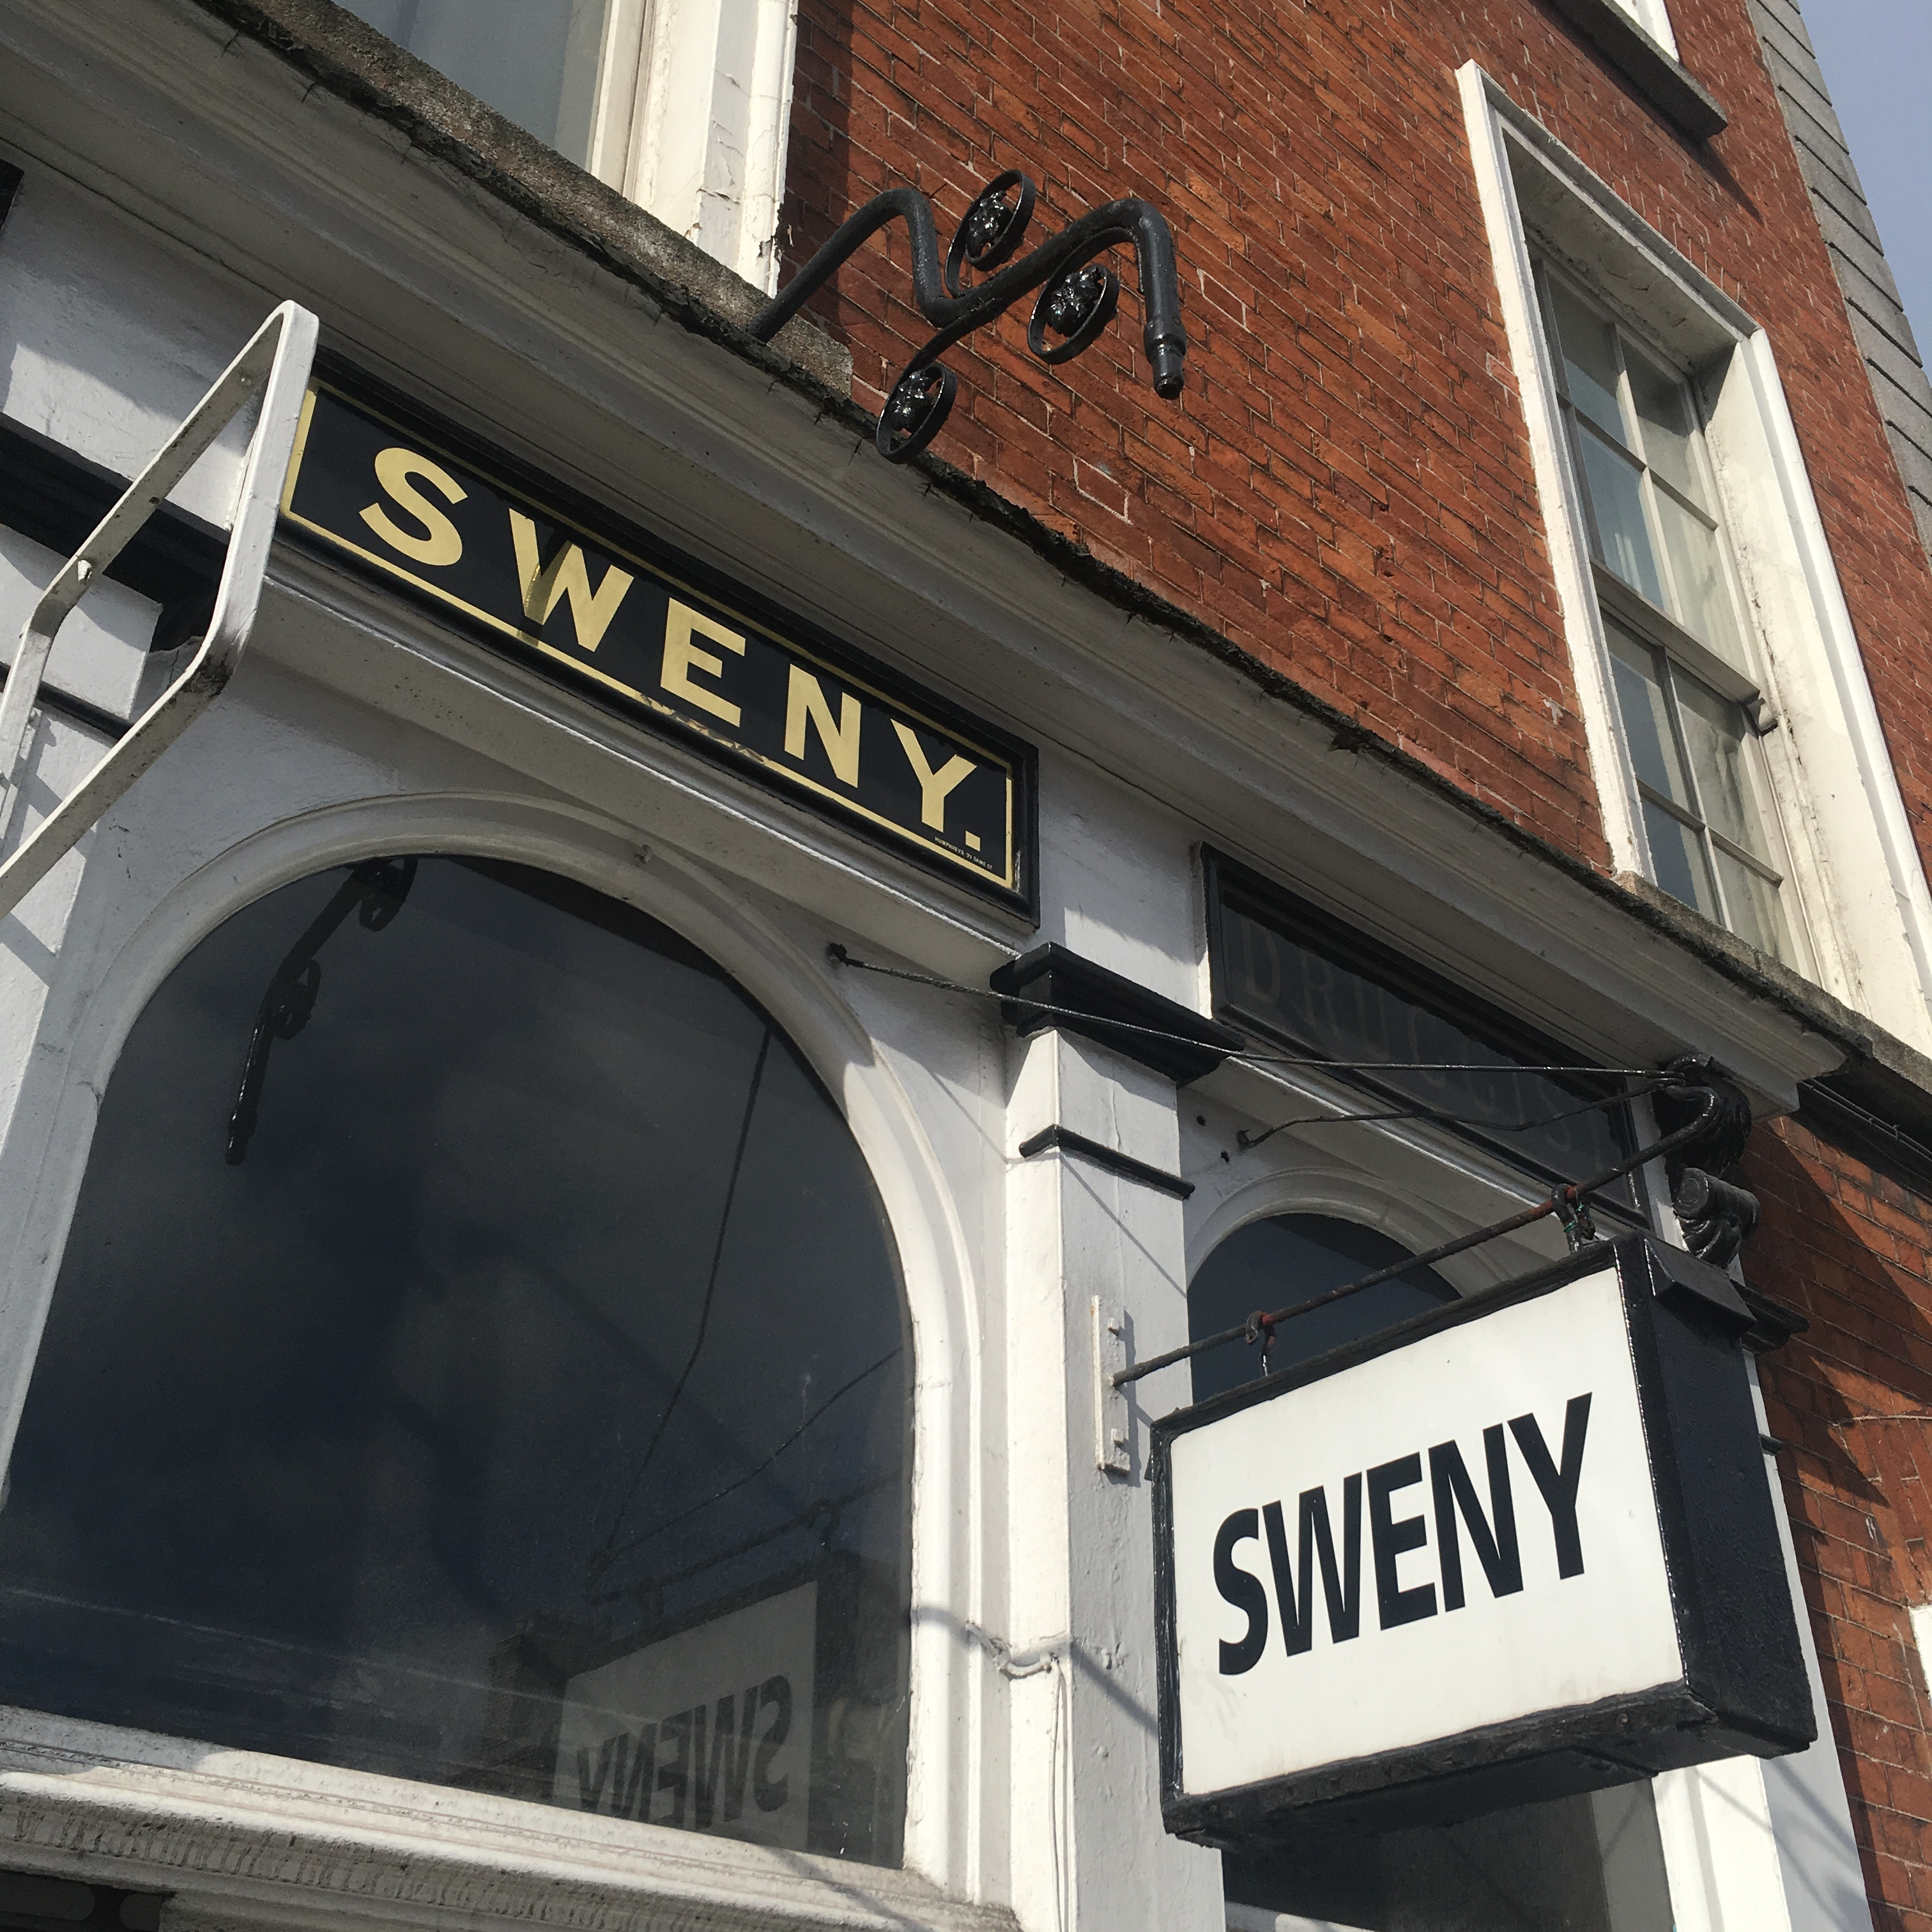 Sweny's chemist pharmacist drugsture Dublin Ulysses James Joyce